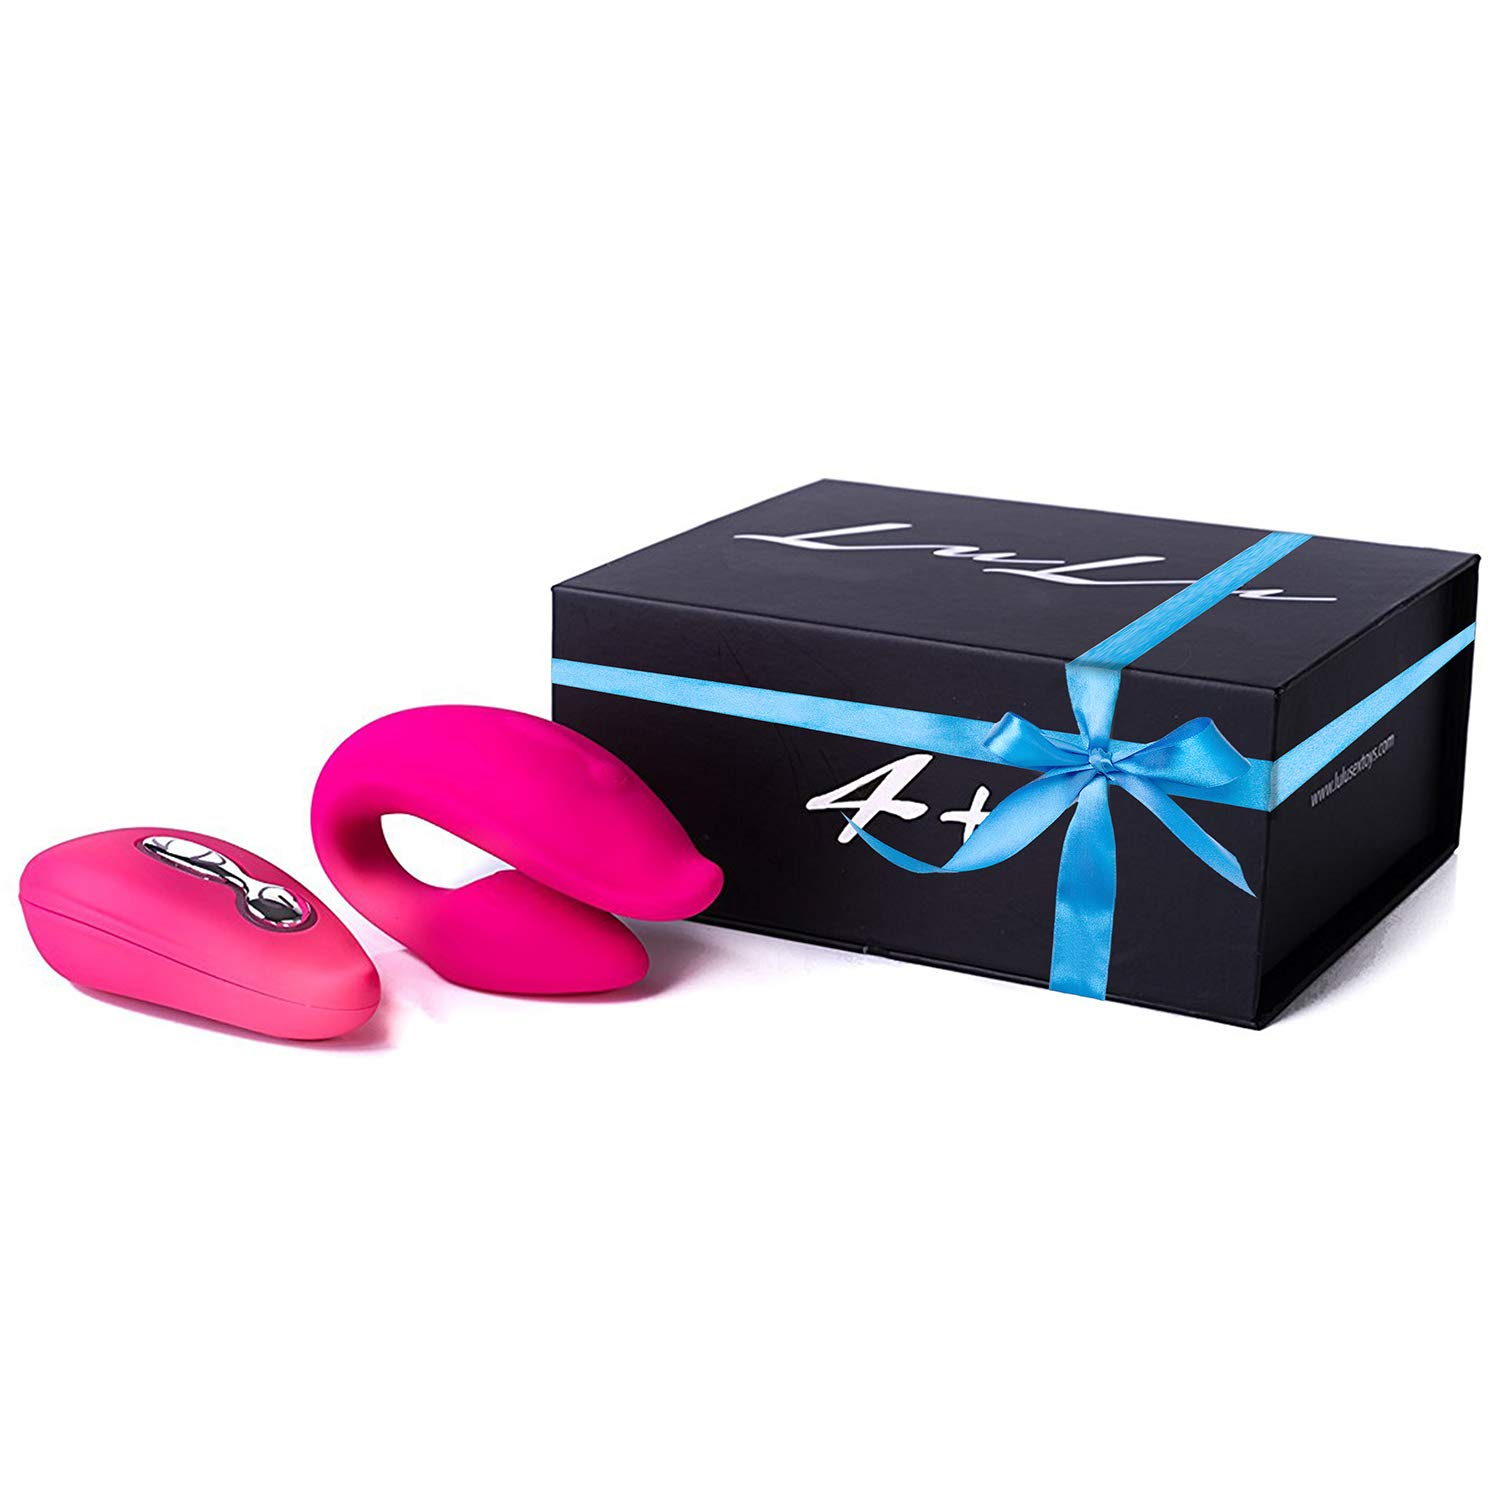 ❤️ LuLu 4 Plus - Wireless Waterproof Dual Vibrator For Him Her & Couples, 5 Unique Patterns, Made Of Body Safe Silicone - Rose Red